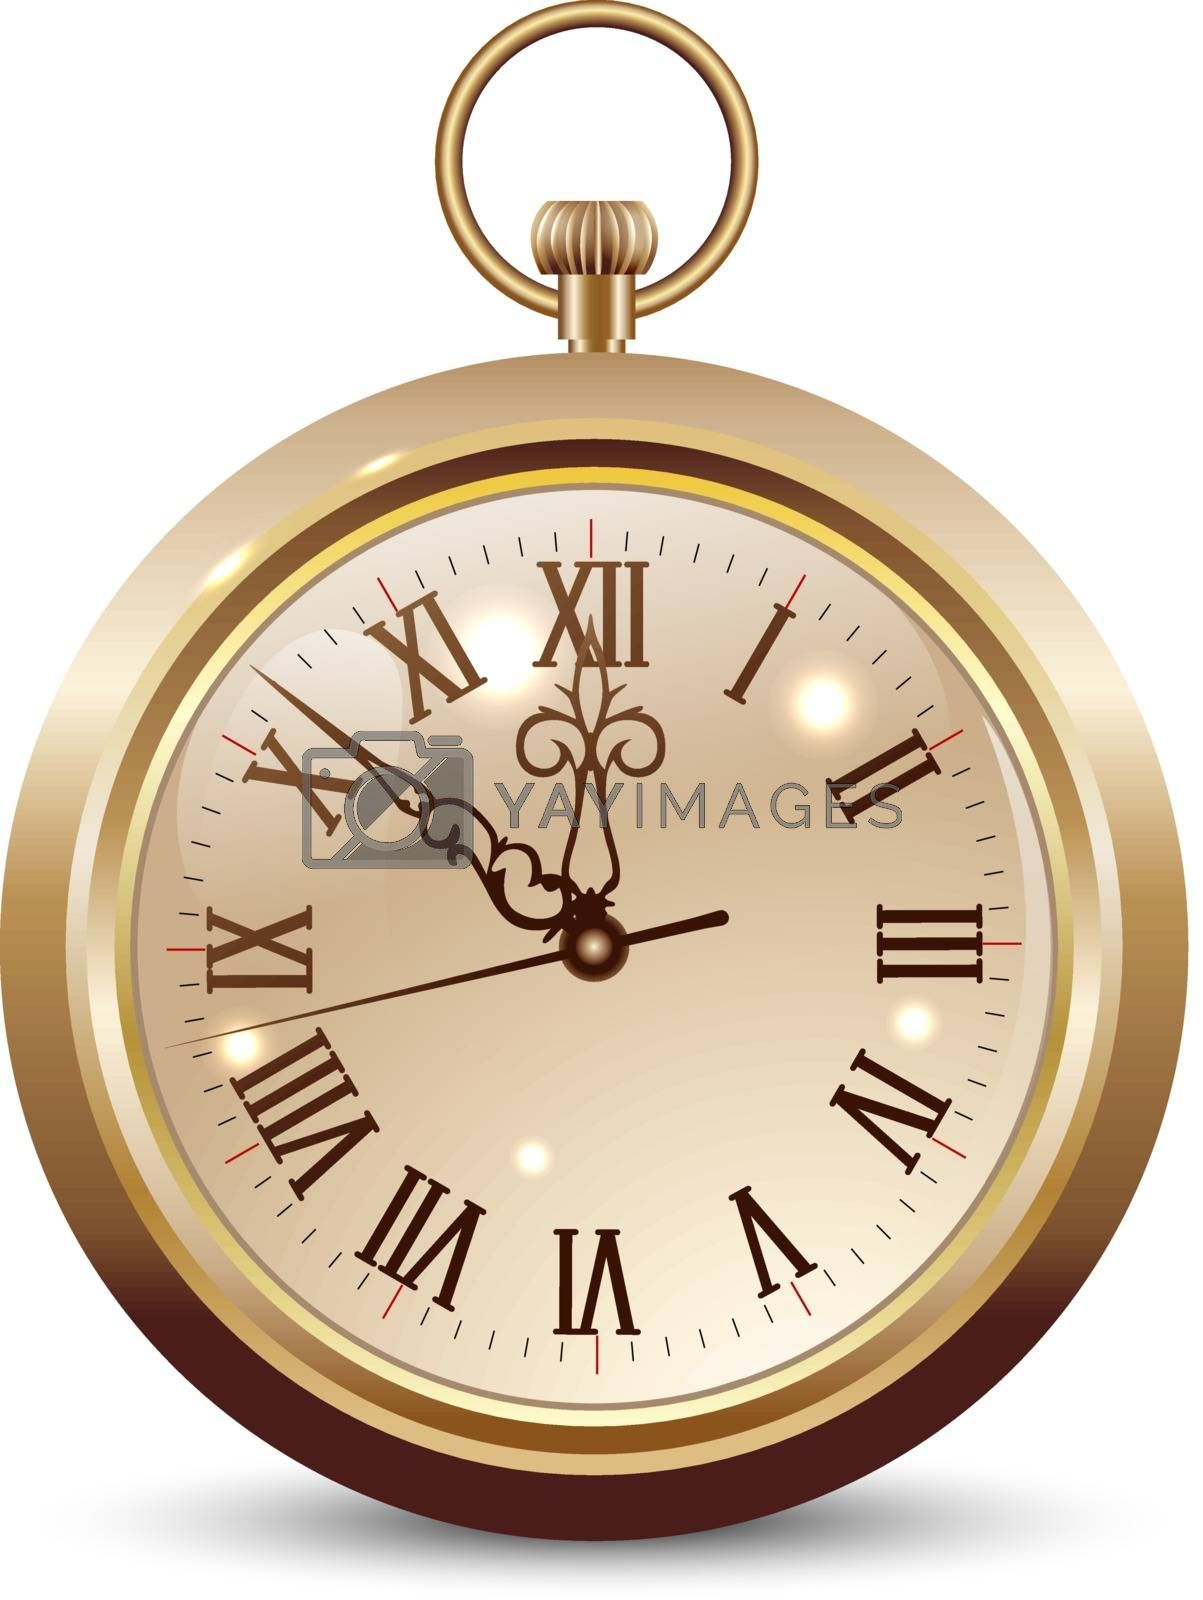 Pocket watch isolated on a white background. Design element. Pocket watch in gold color.